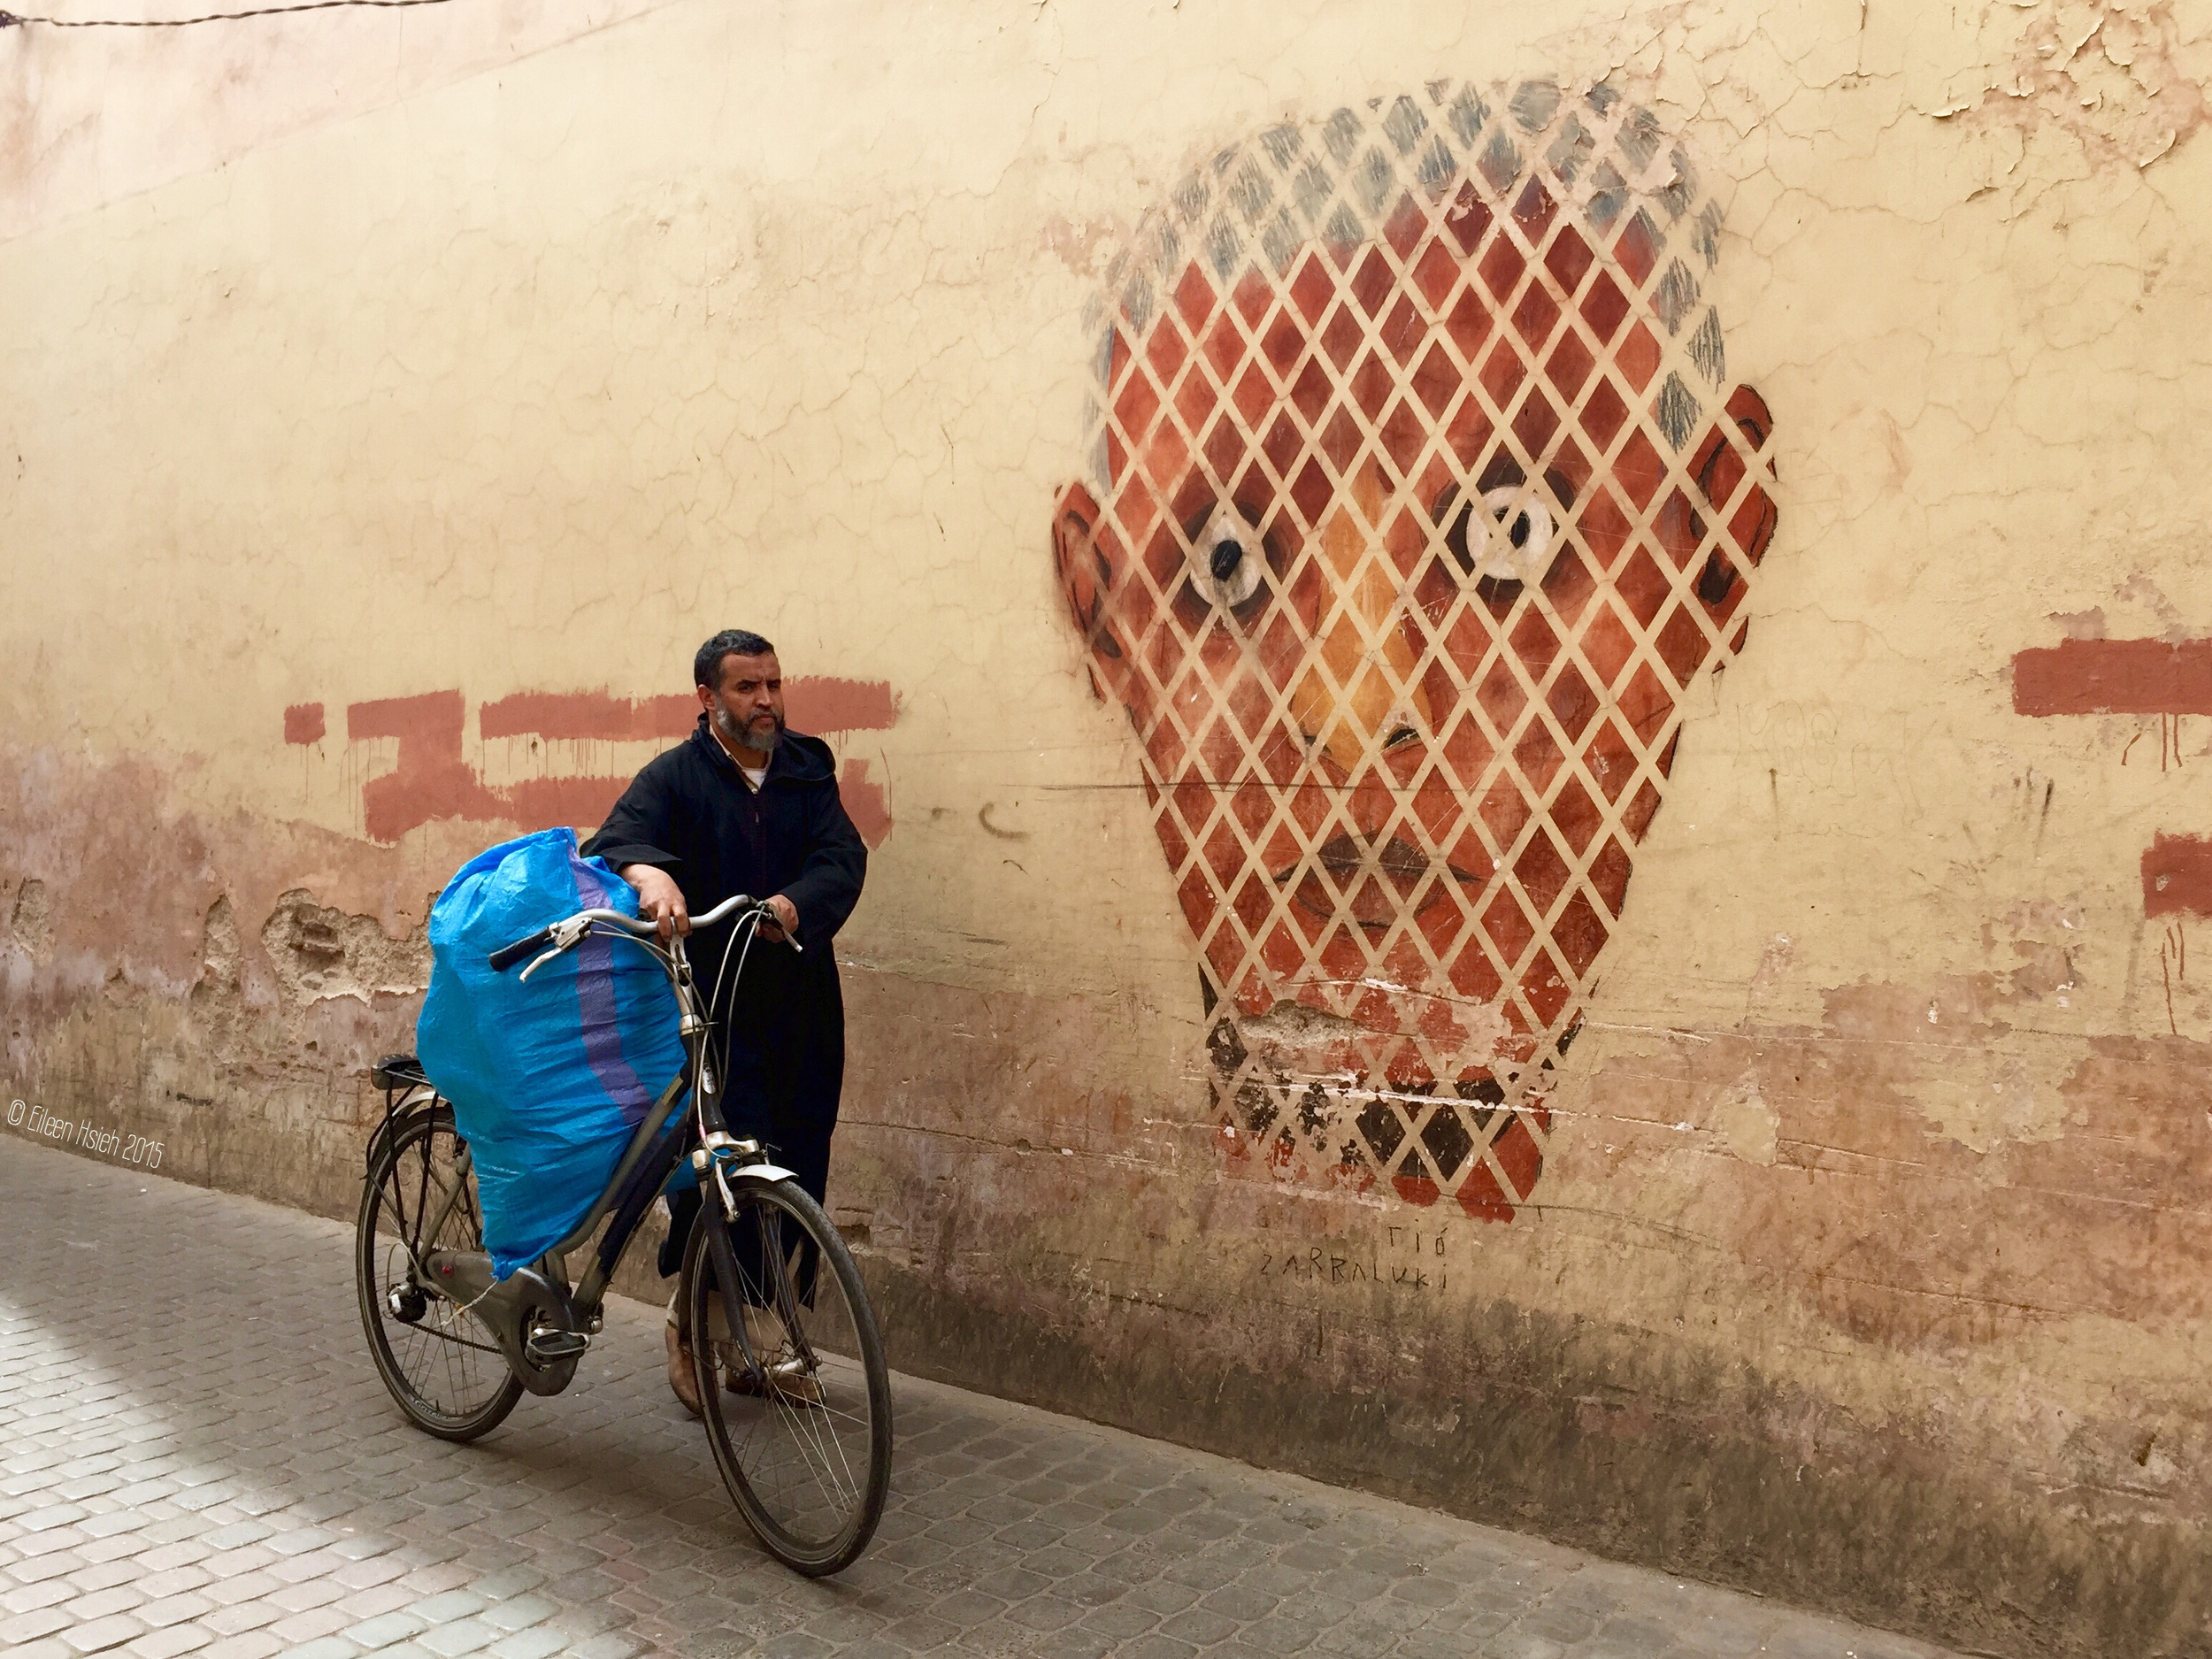 Bicycles, mopeds and donkey carts are the most common forms of transportation in the narrow streets of Marrakech's medina.機車,腳踏車與驢車是在馬拉喀什迷宮般的老城裡最常見的交通工具。